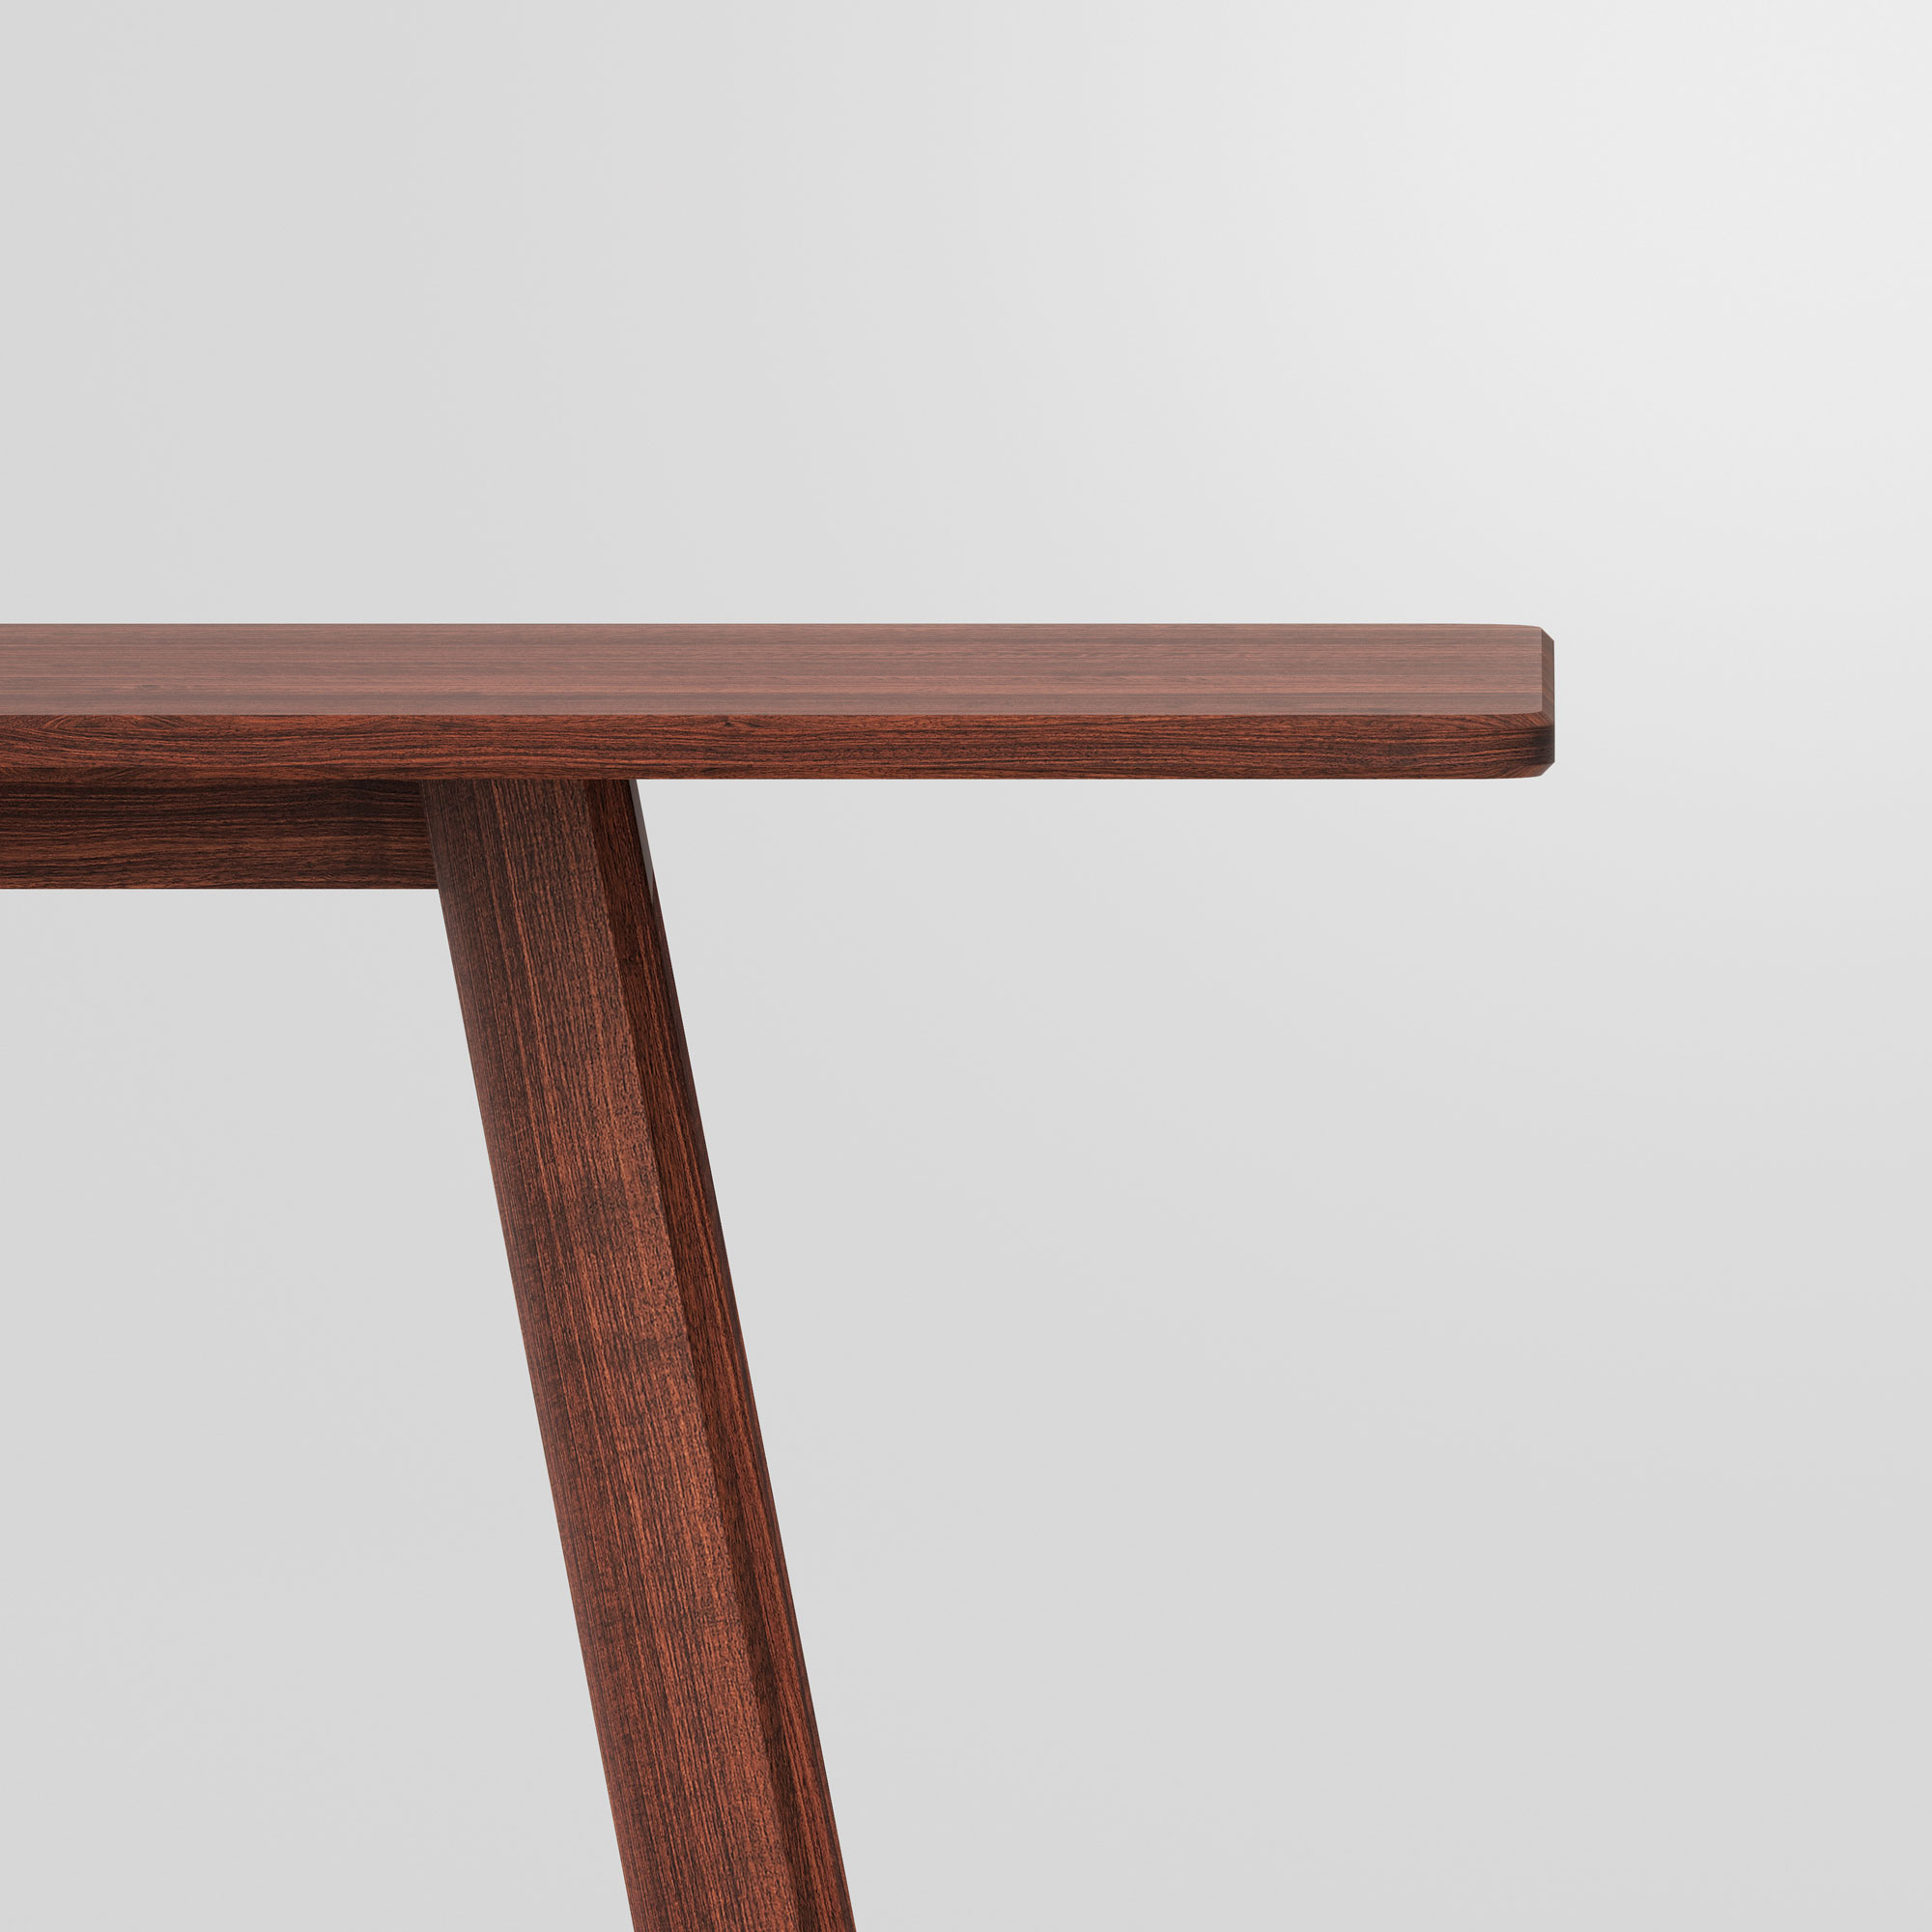 Designer Dining Table LARGUS cam5 custom made in solid wood by vitamin design